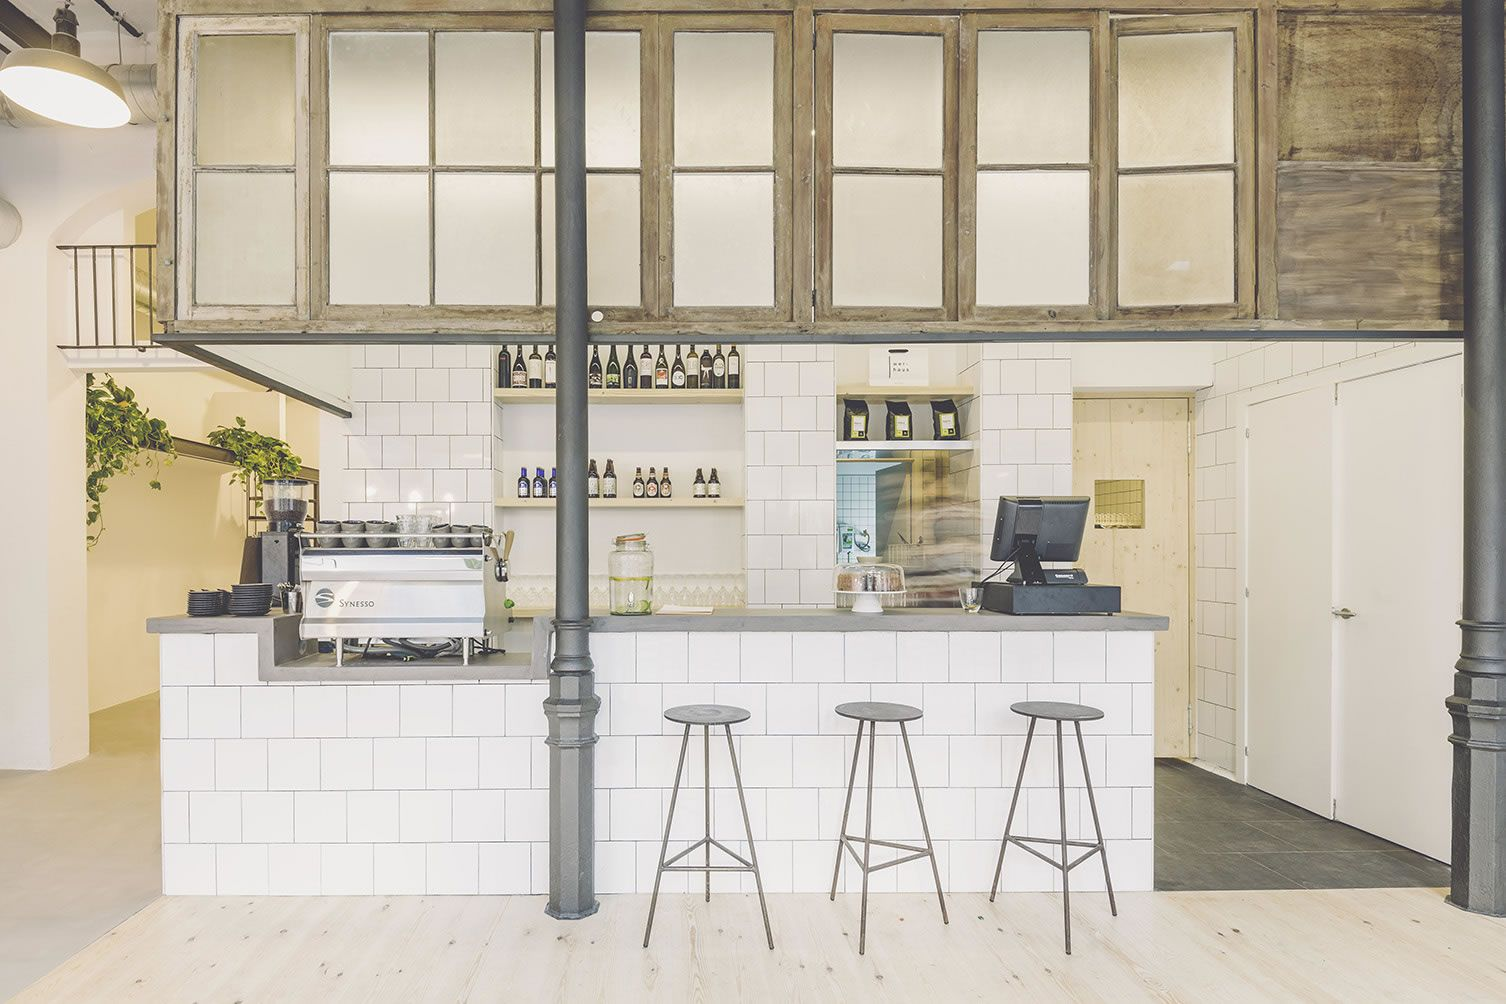 Ice cool concept store Wer-Haus ramps up Barcelona\'s style ...